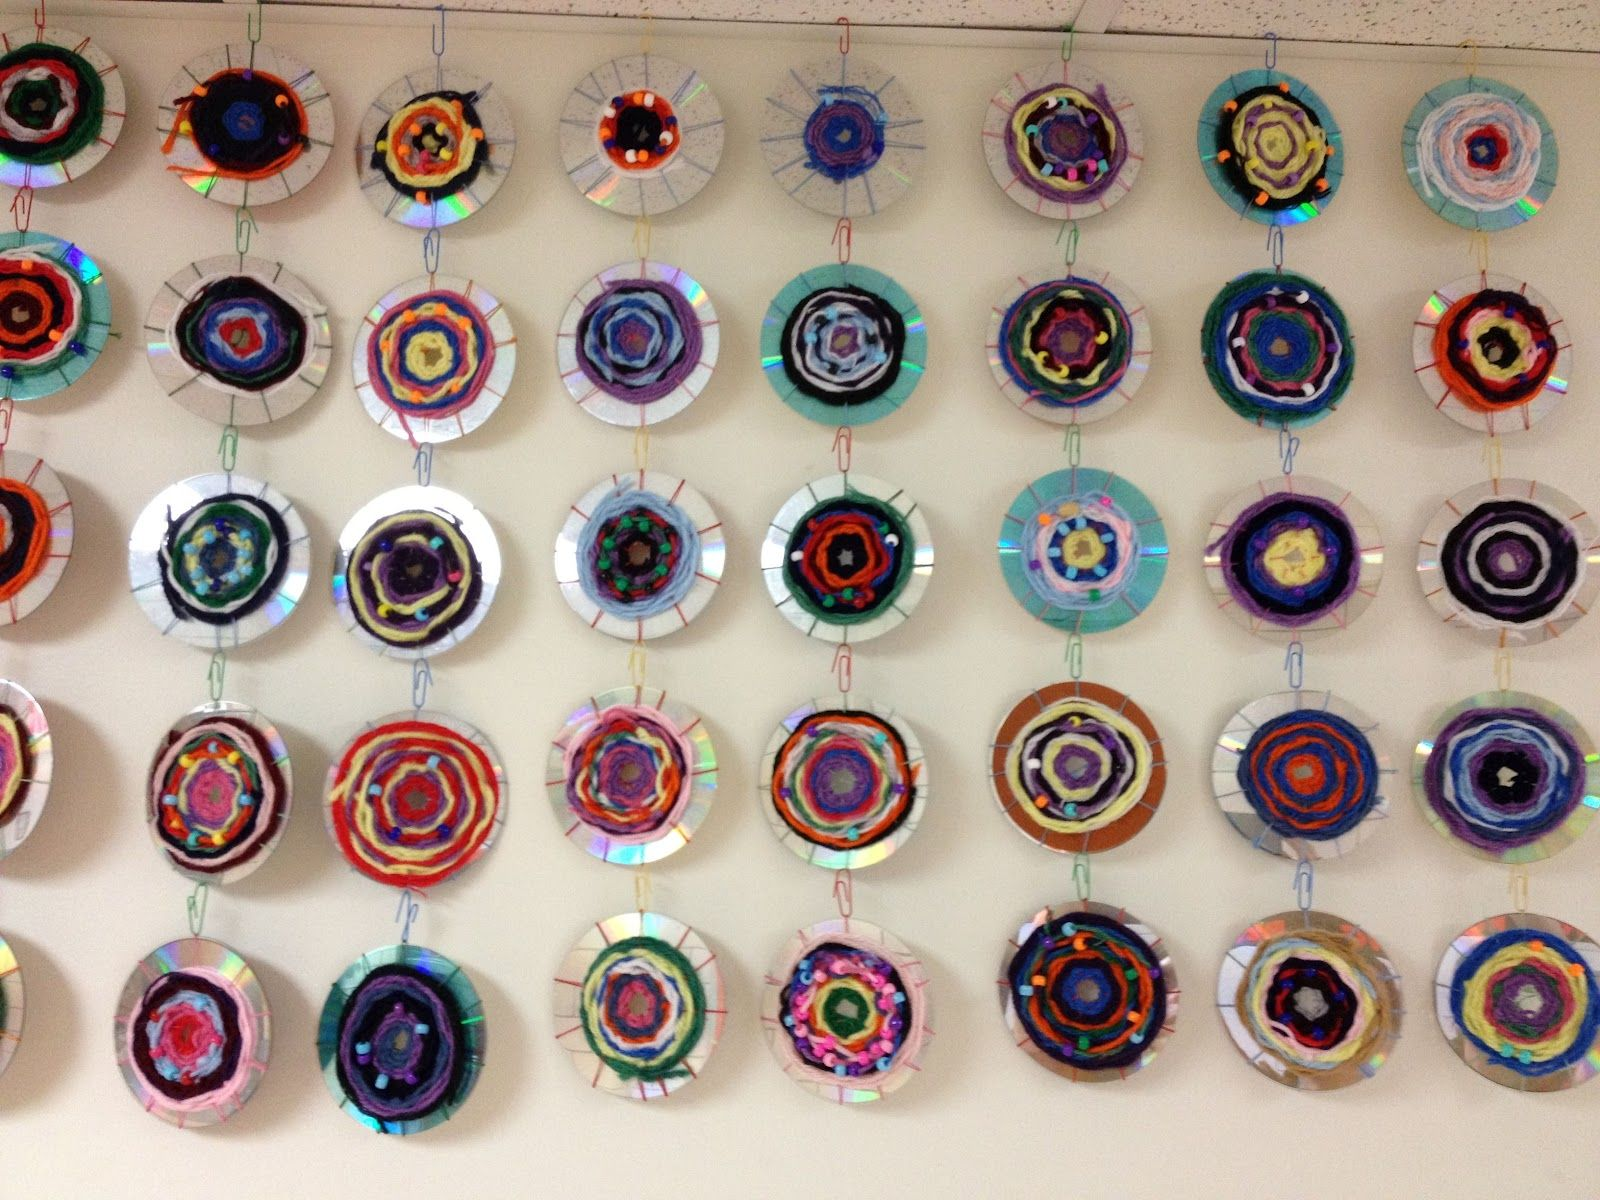 Recycled CD weavings- Splats, Scraps and Glue Blobs #recycledcd